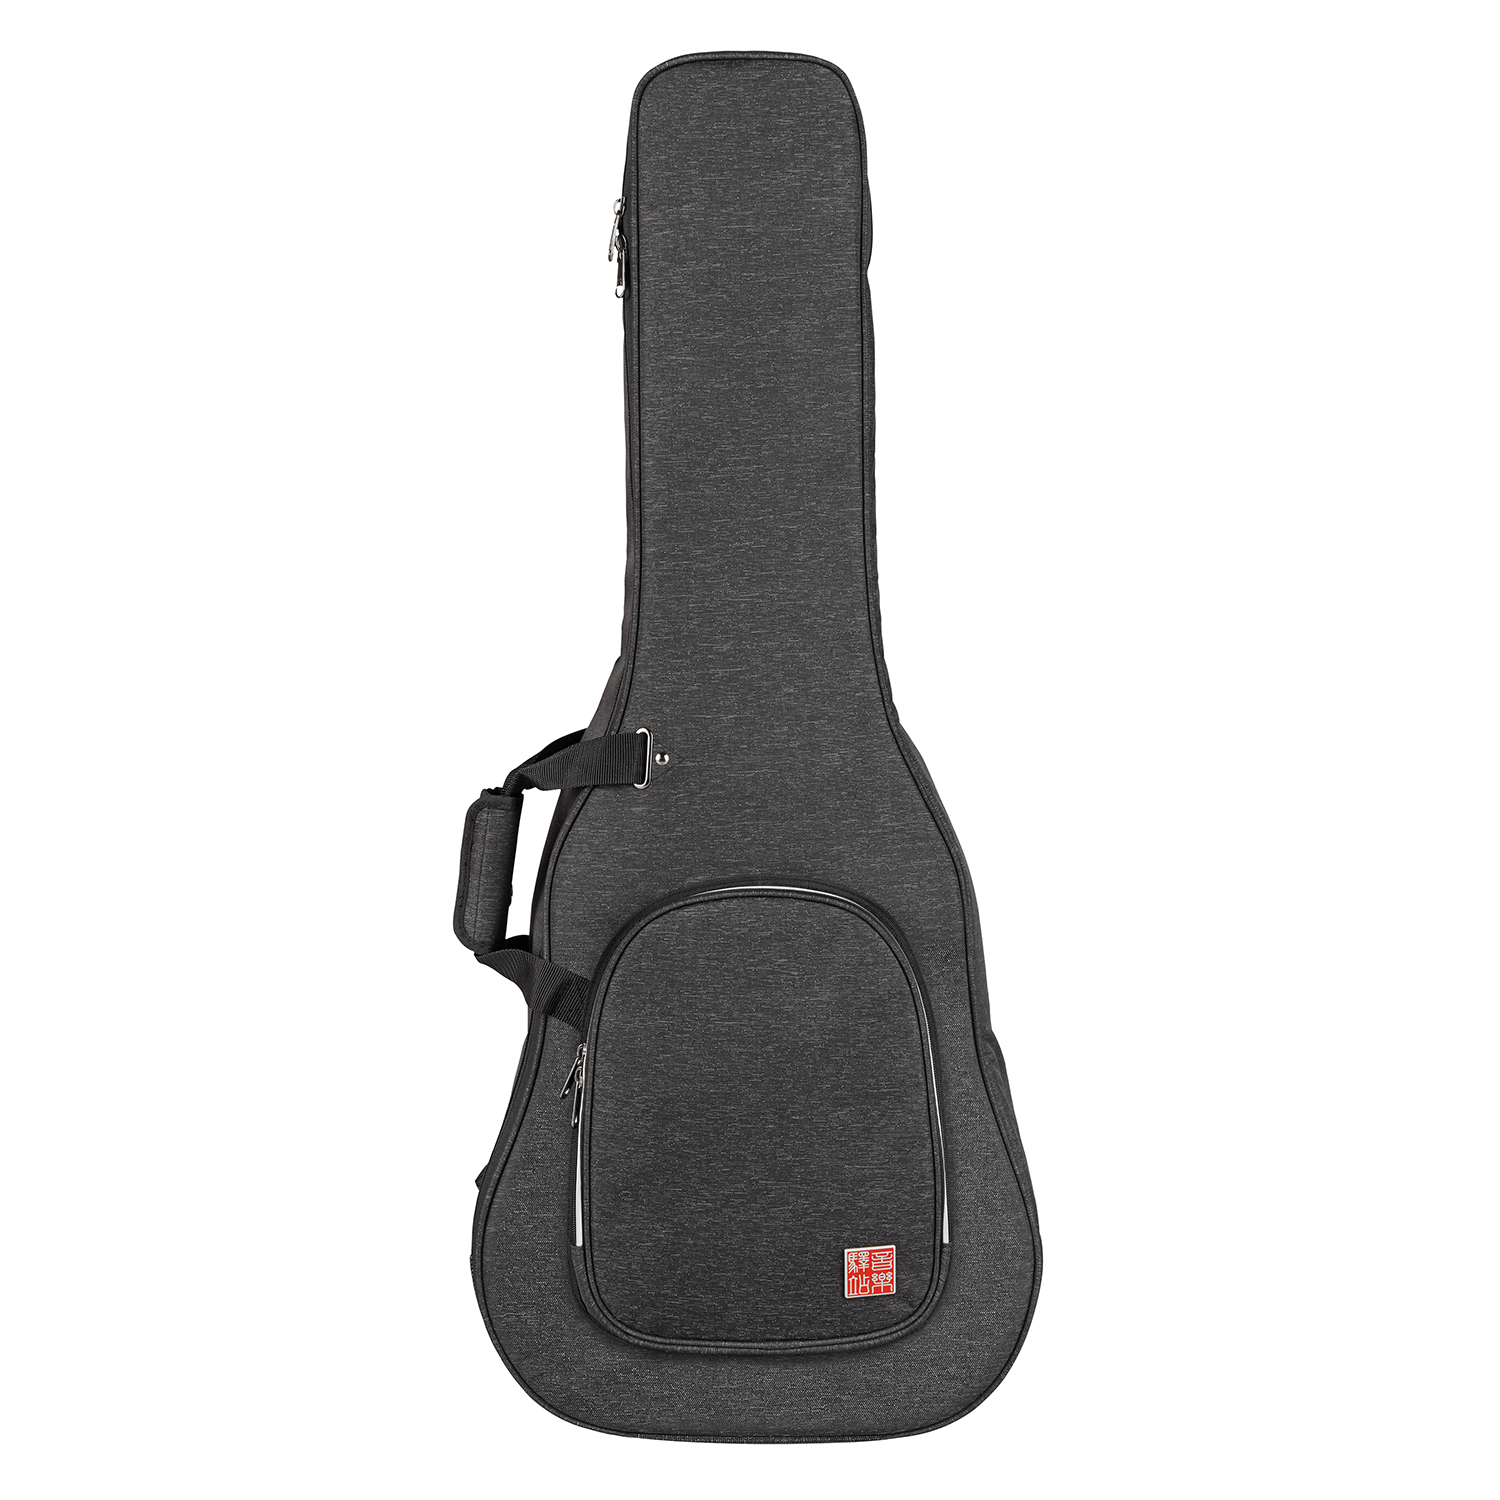 Music Area RB20 Classic Guitar Gig Bag Waterproof with 20mm cushion protection - Black 12mm waterproof soprano concert ukulele bag case backpack 23 24 26 inch ukelele beige mini guitar accessories gig pu leather